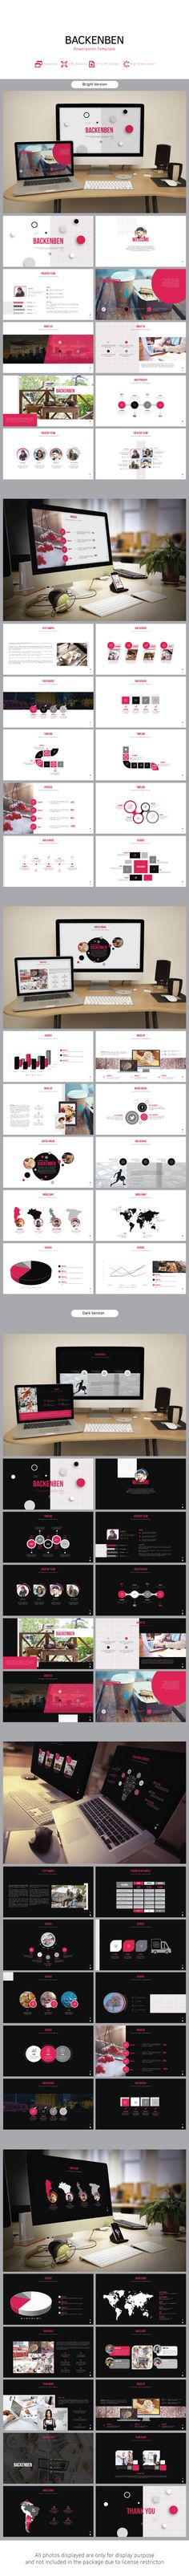 Backenben Presentation Powerpoint — Powerpoint PPT #annual report #Social Marketing • Download ➝ https://graphicriver.net/item/backenben-presentation-powerpoint/19448230?ref=pxcr